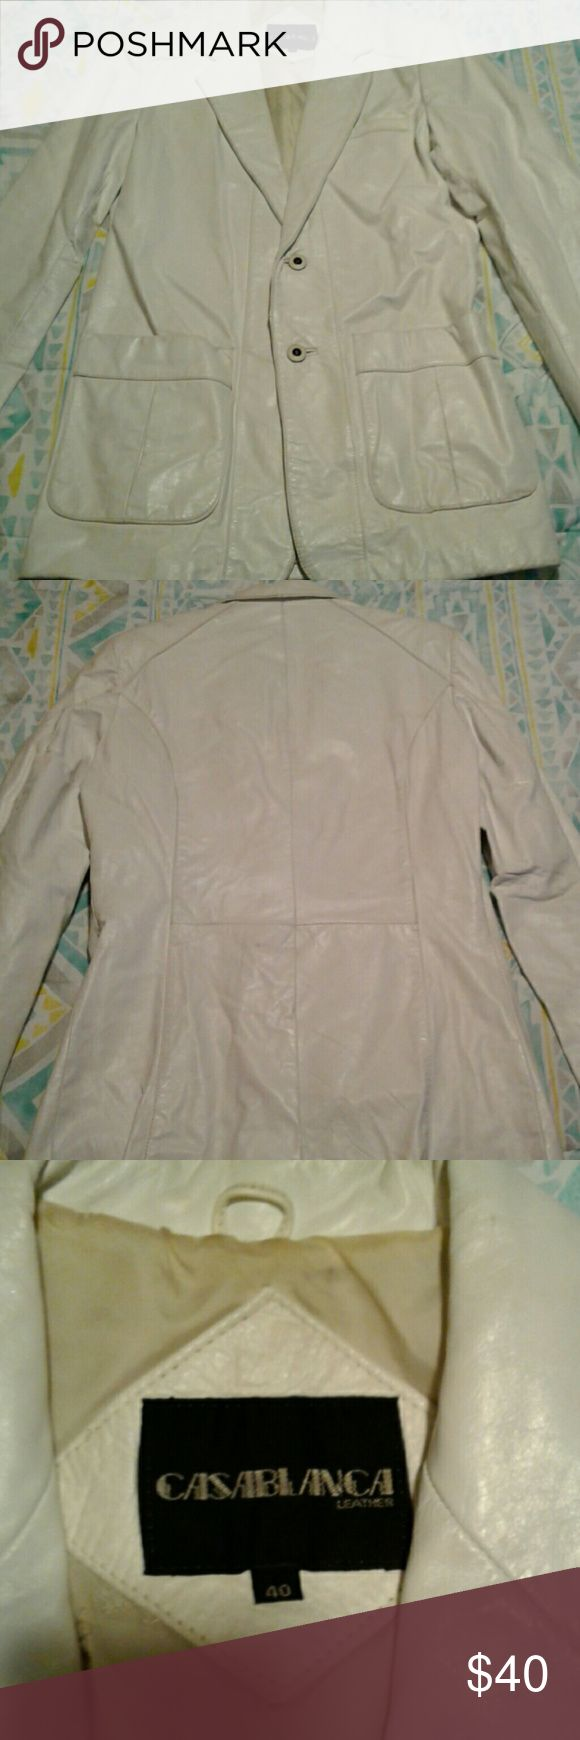 AUTHENTIC Mens White Leather Jacket 100% AUTHENTIC Cream men's leather Jacket with Tan lining Casablanca  Jackets & Coats